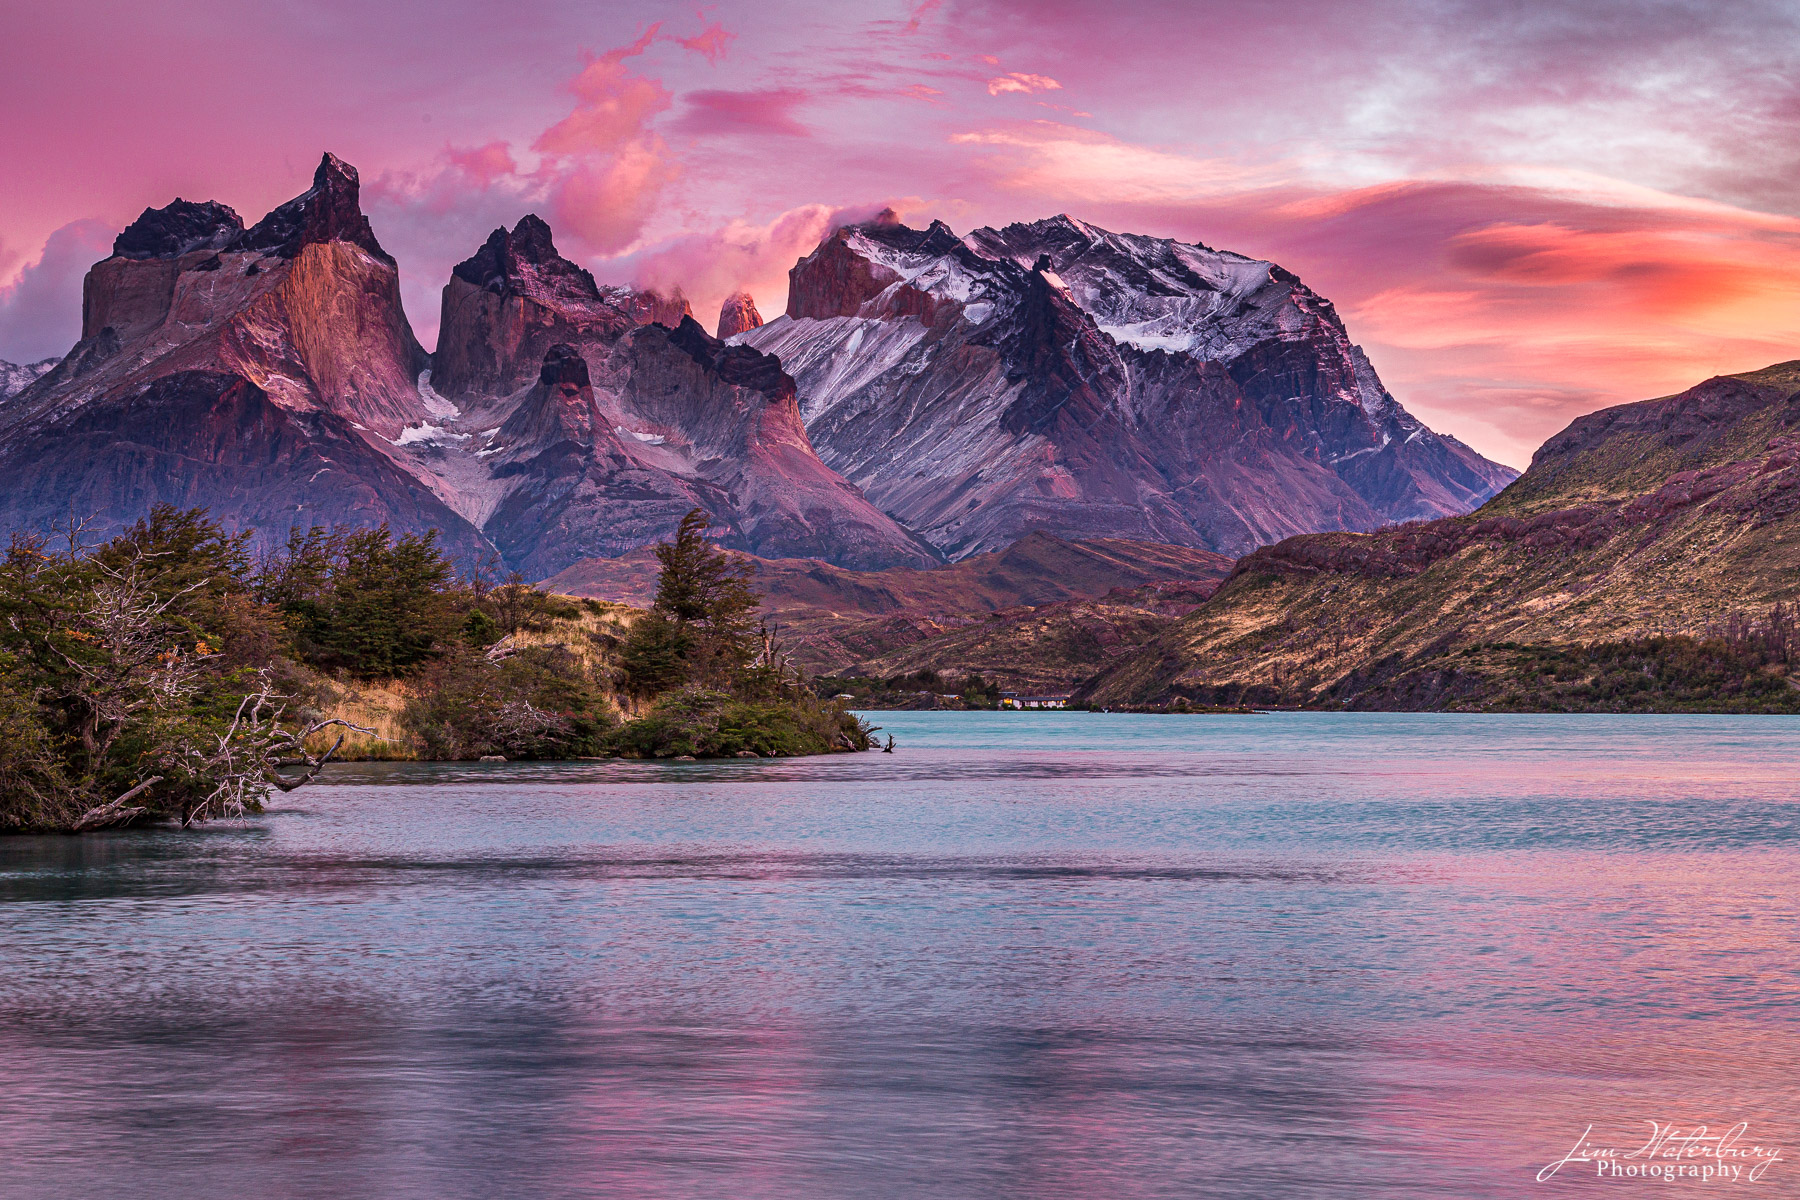 Torres del Paine,  bathed in a colorful, fall sunrise, and Pehoe Lake in the foreground, in Patagonia.